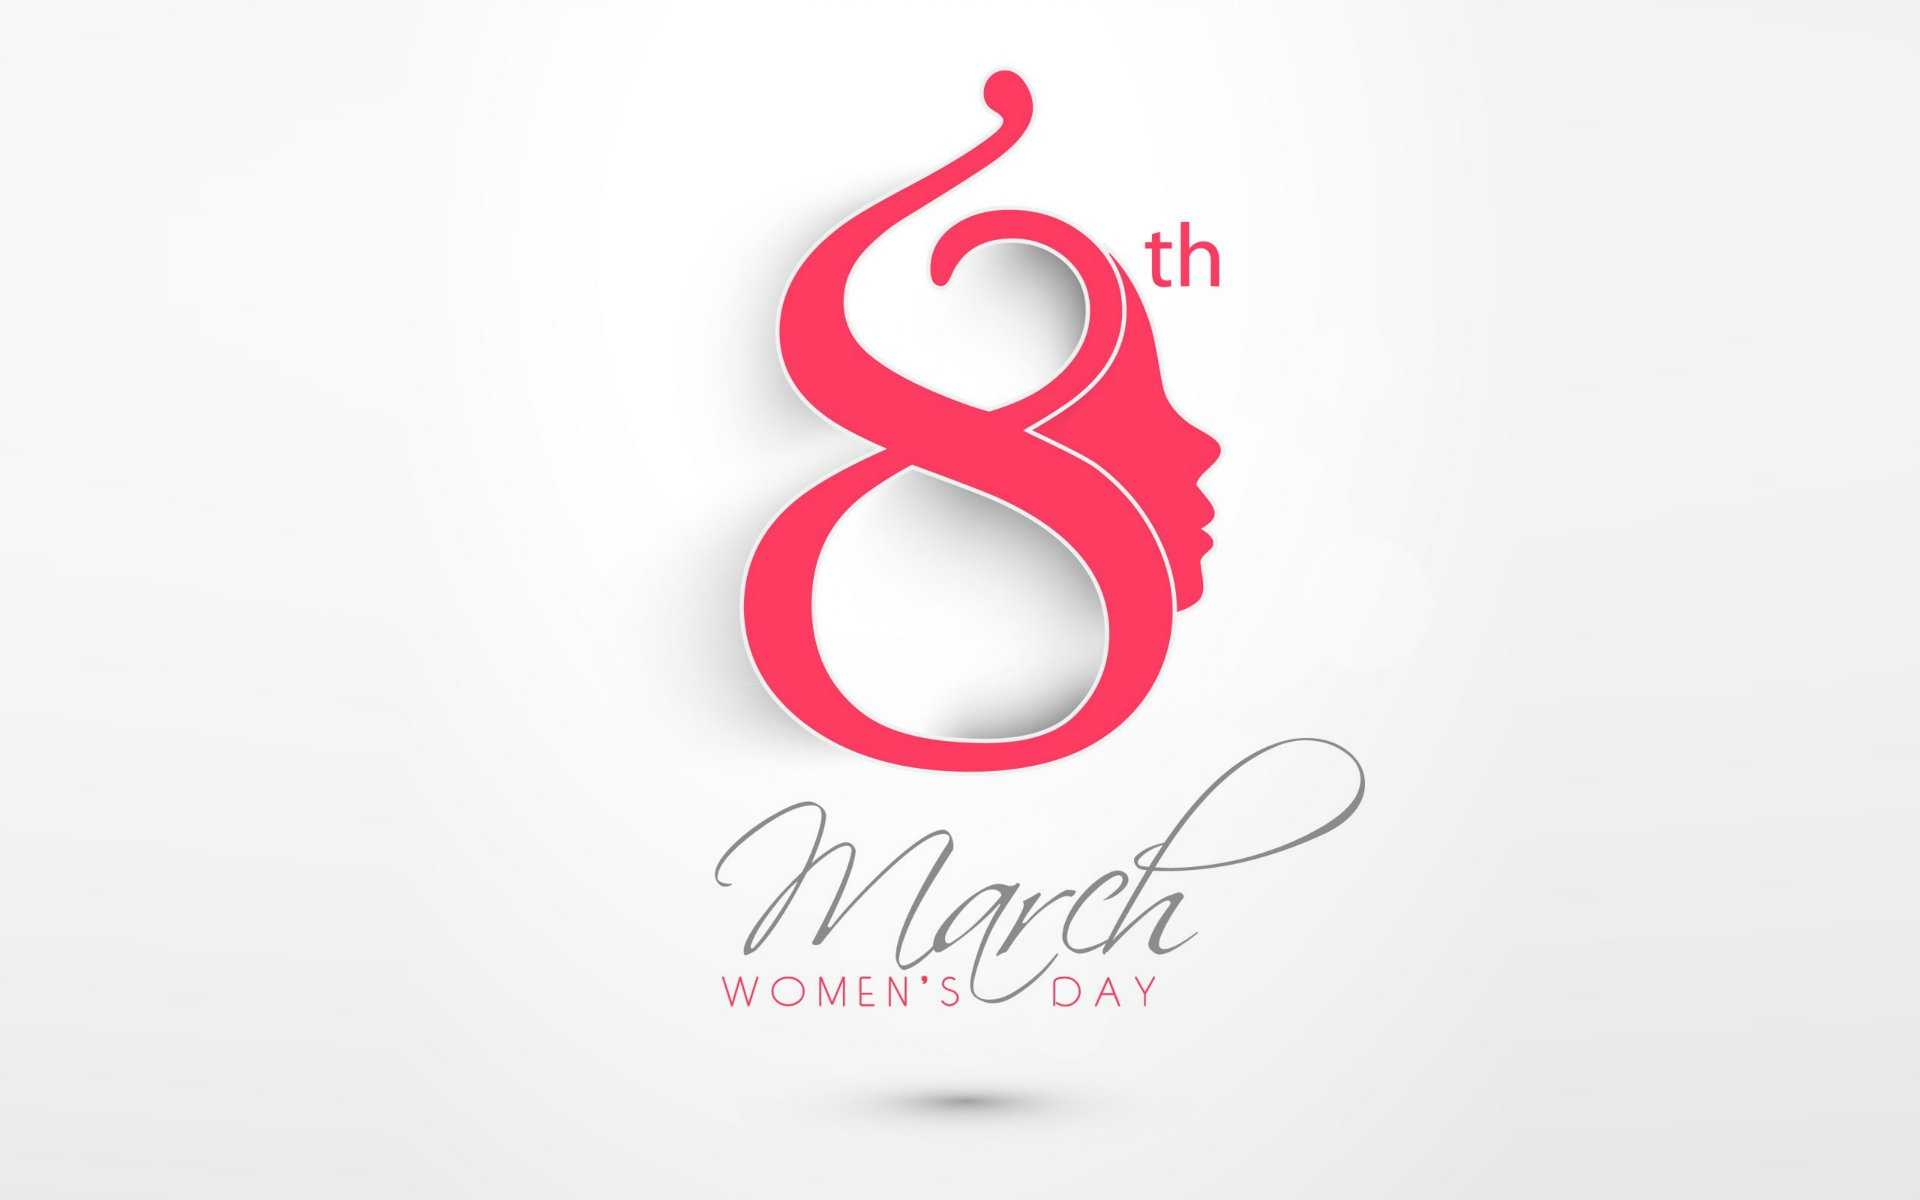 March 8th Womans Day